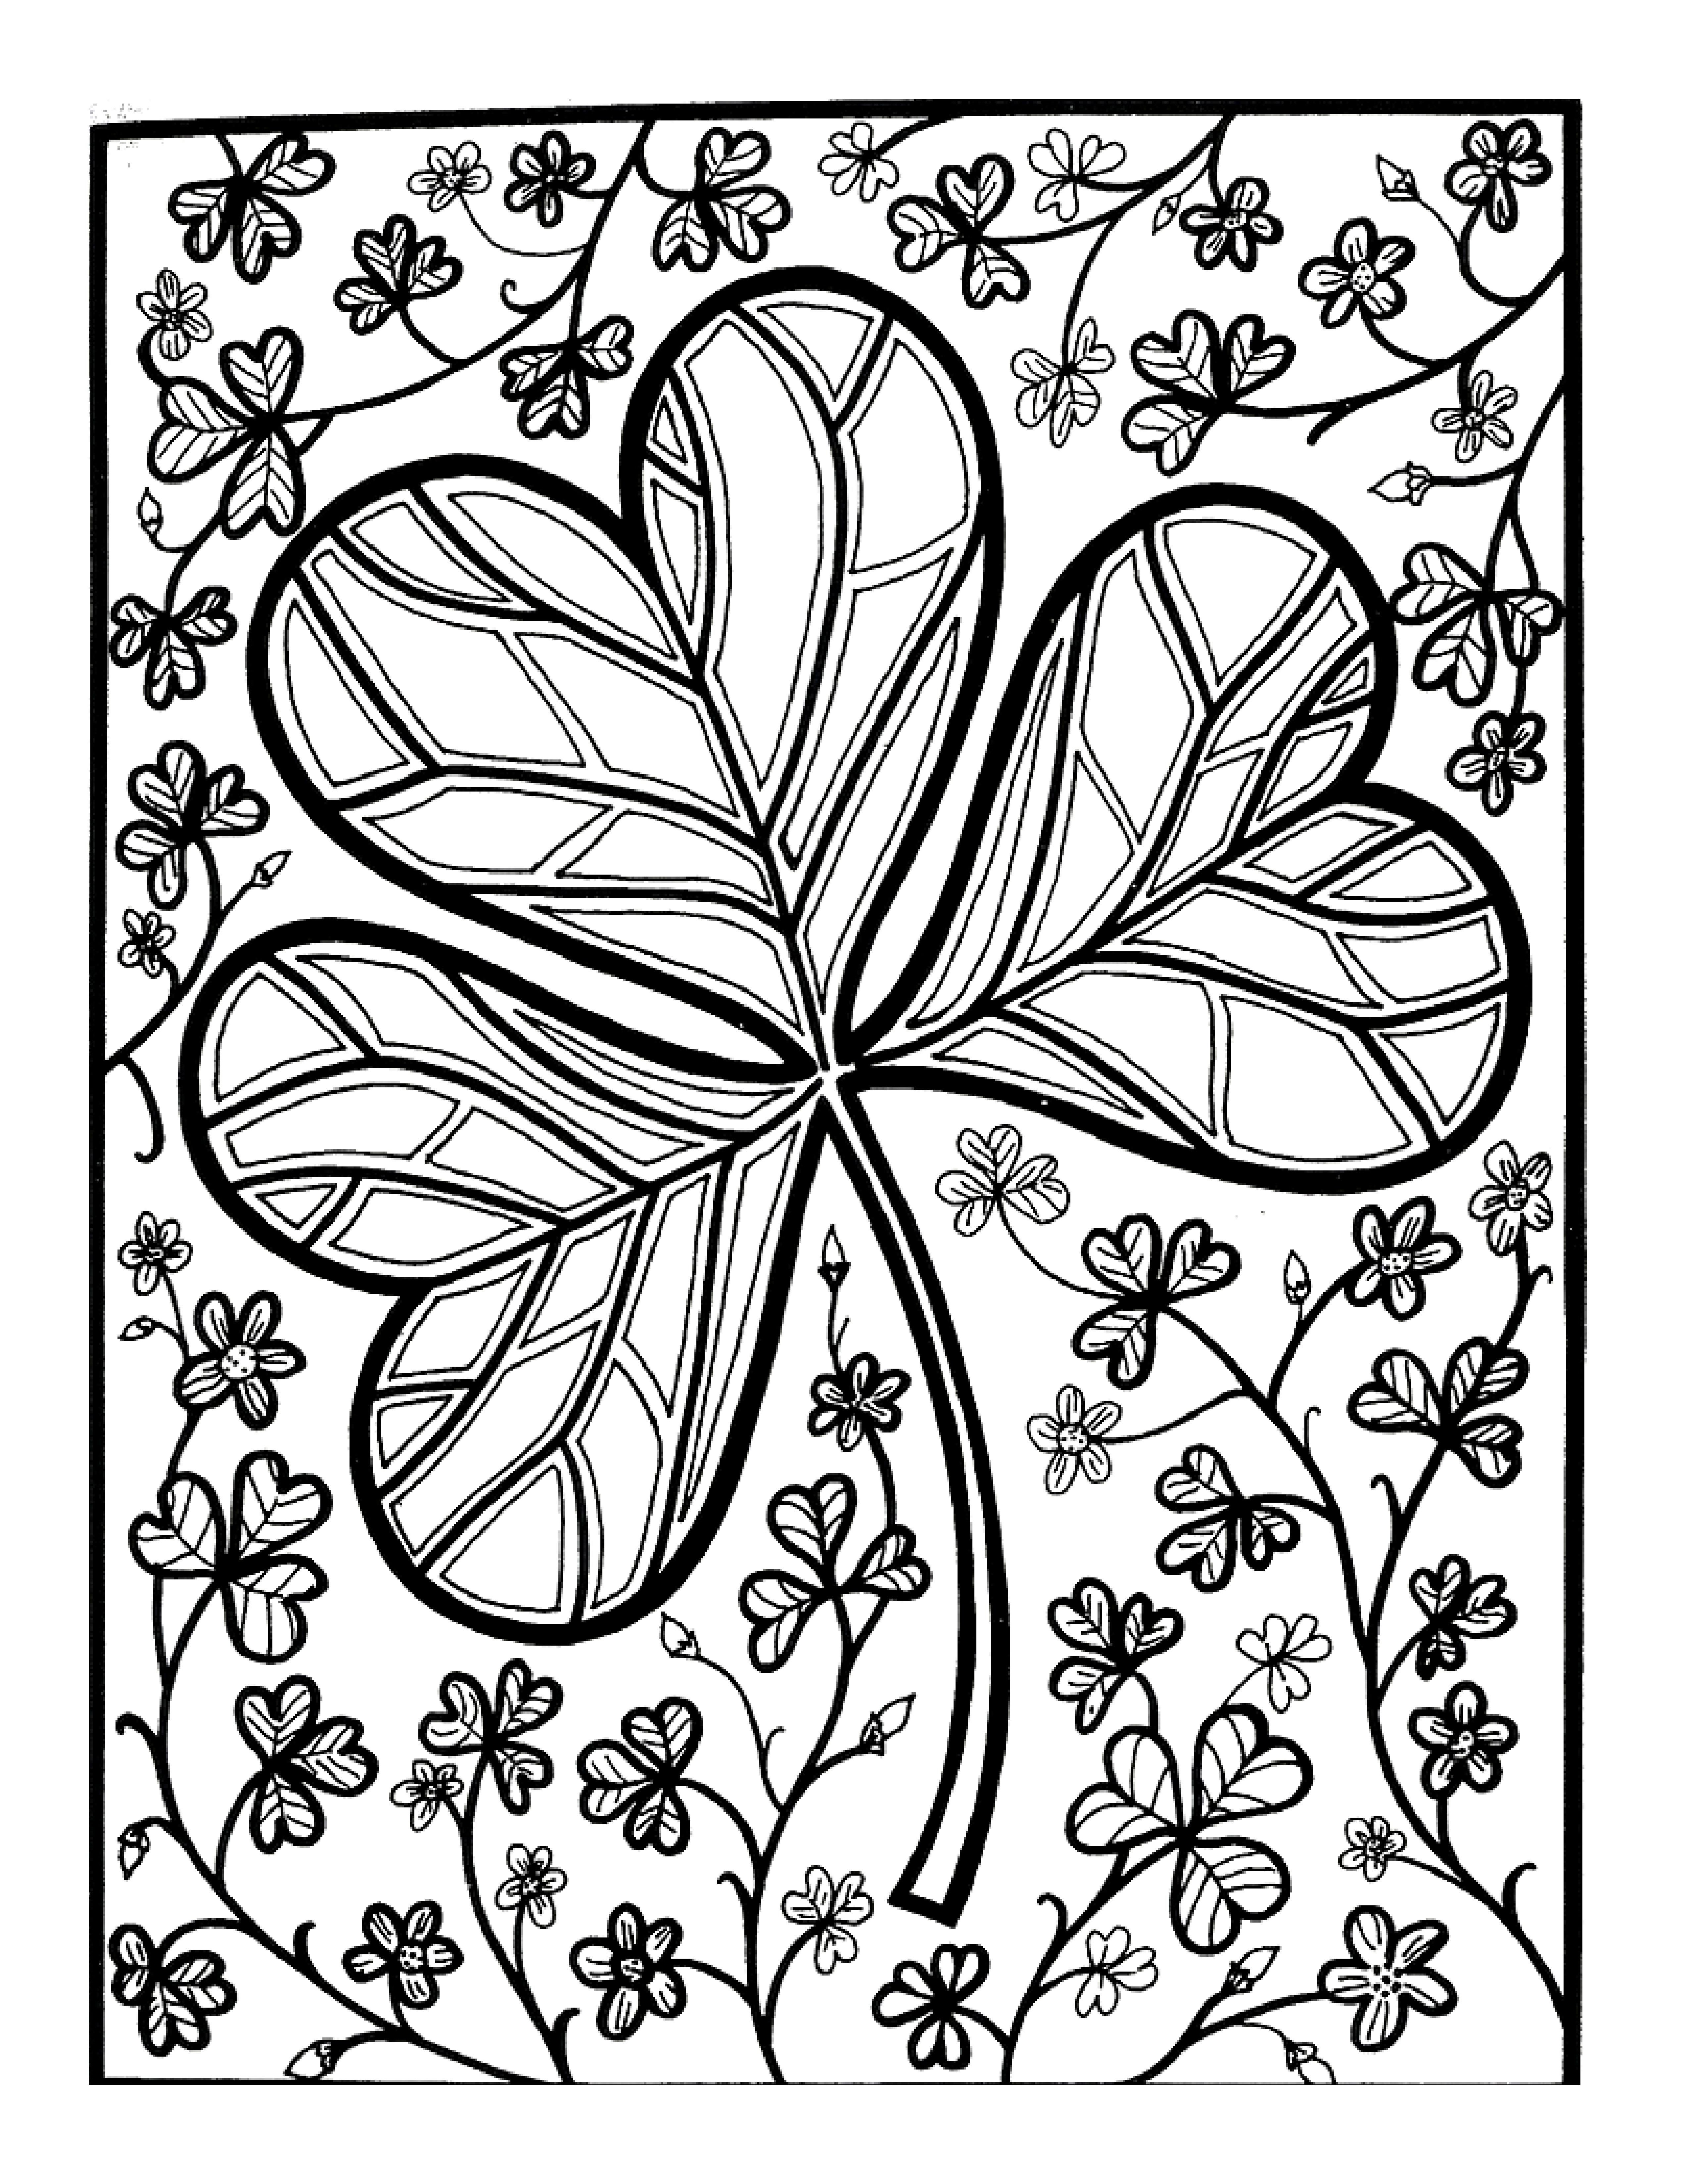 Pin By William Mike Groeneveld On Let S Doodle Coloring Pages Coloring Pages Adult Coloring Pages St Patricks Day Crafts For Kids